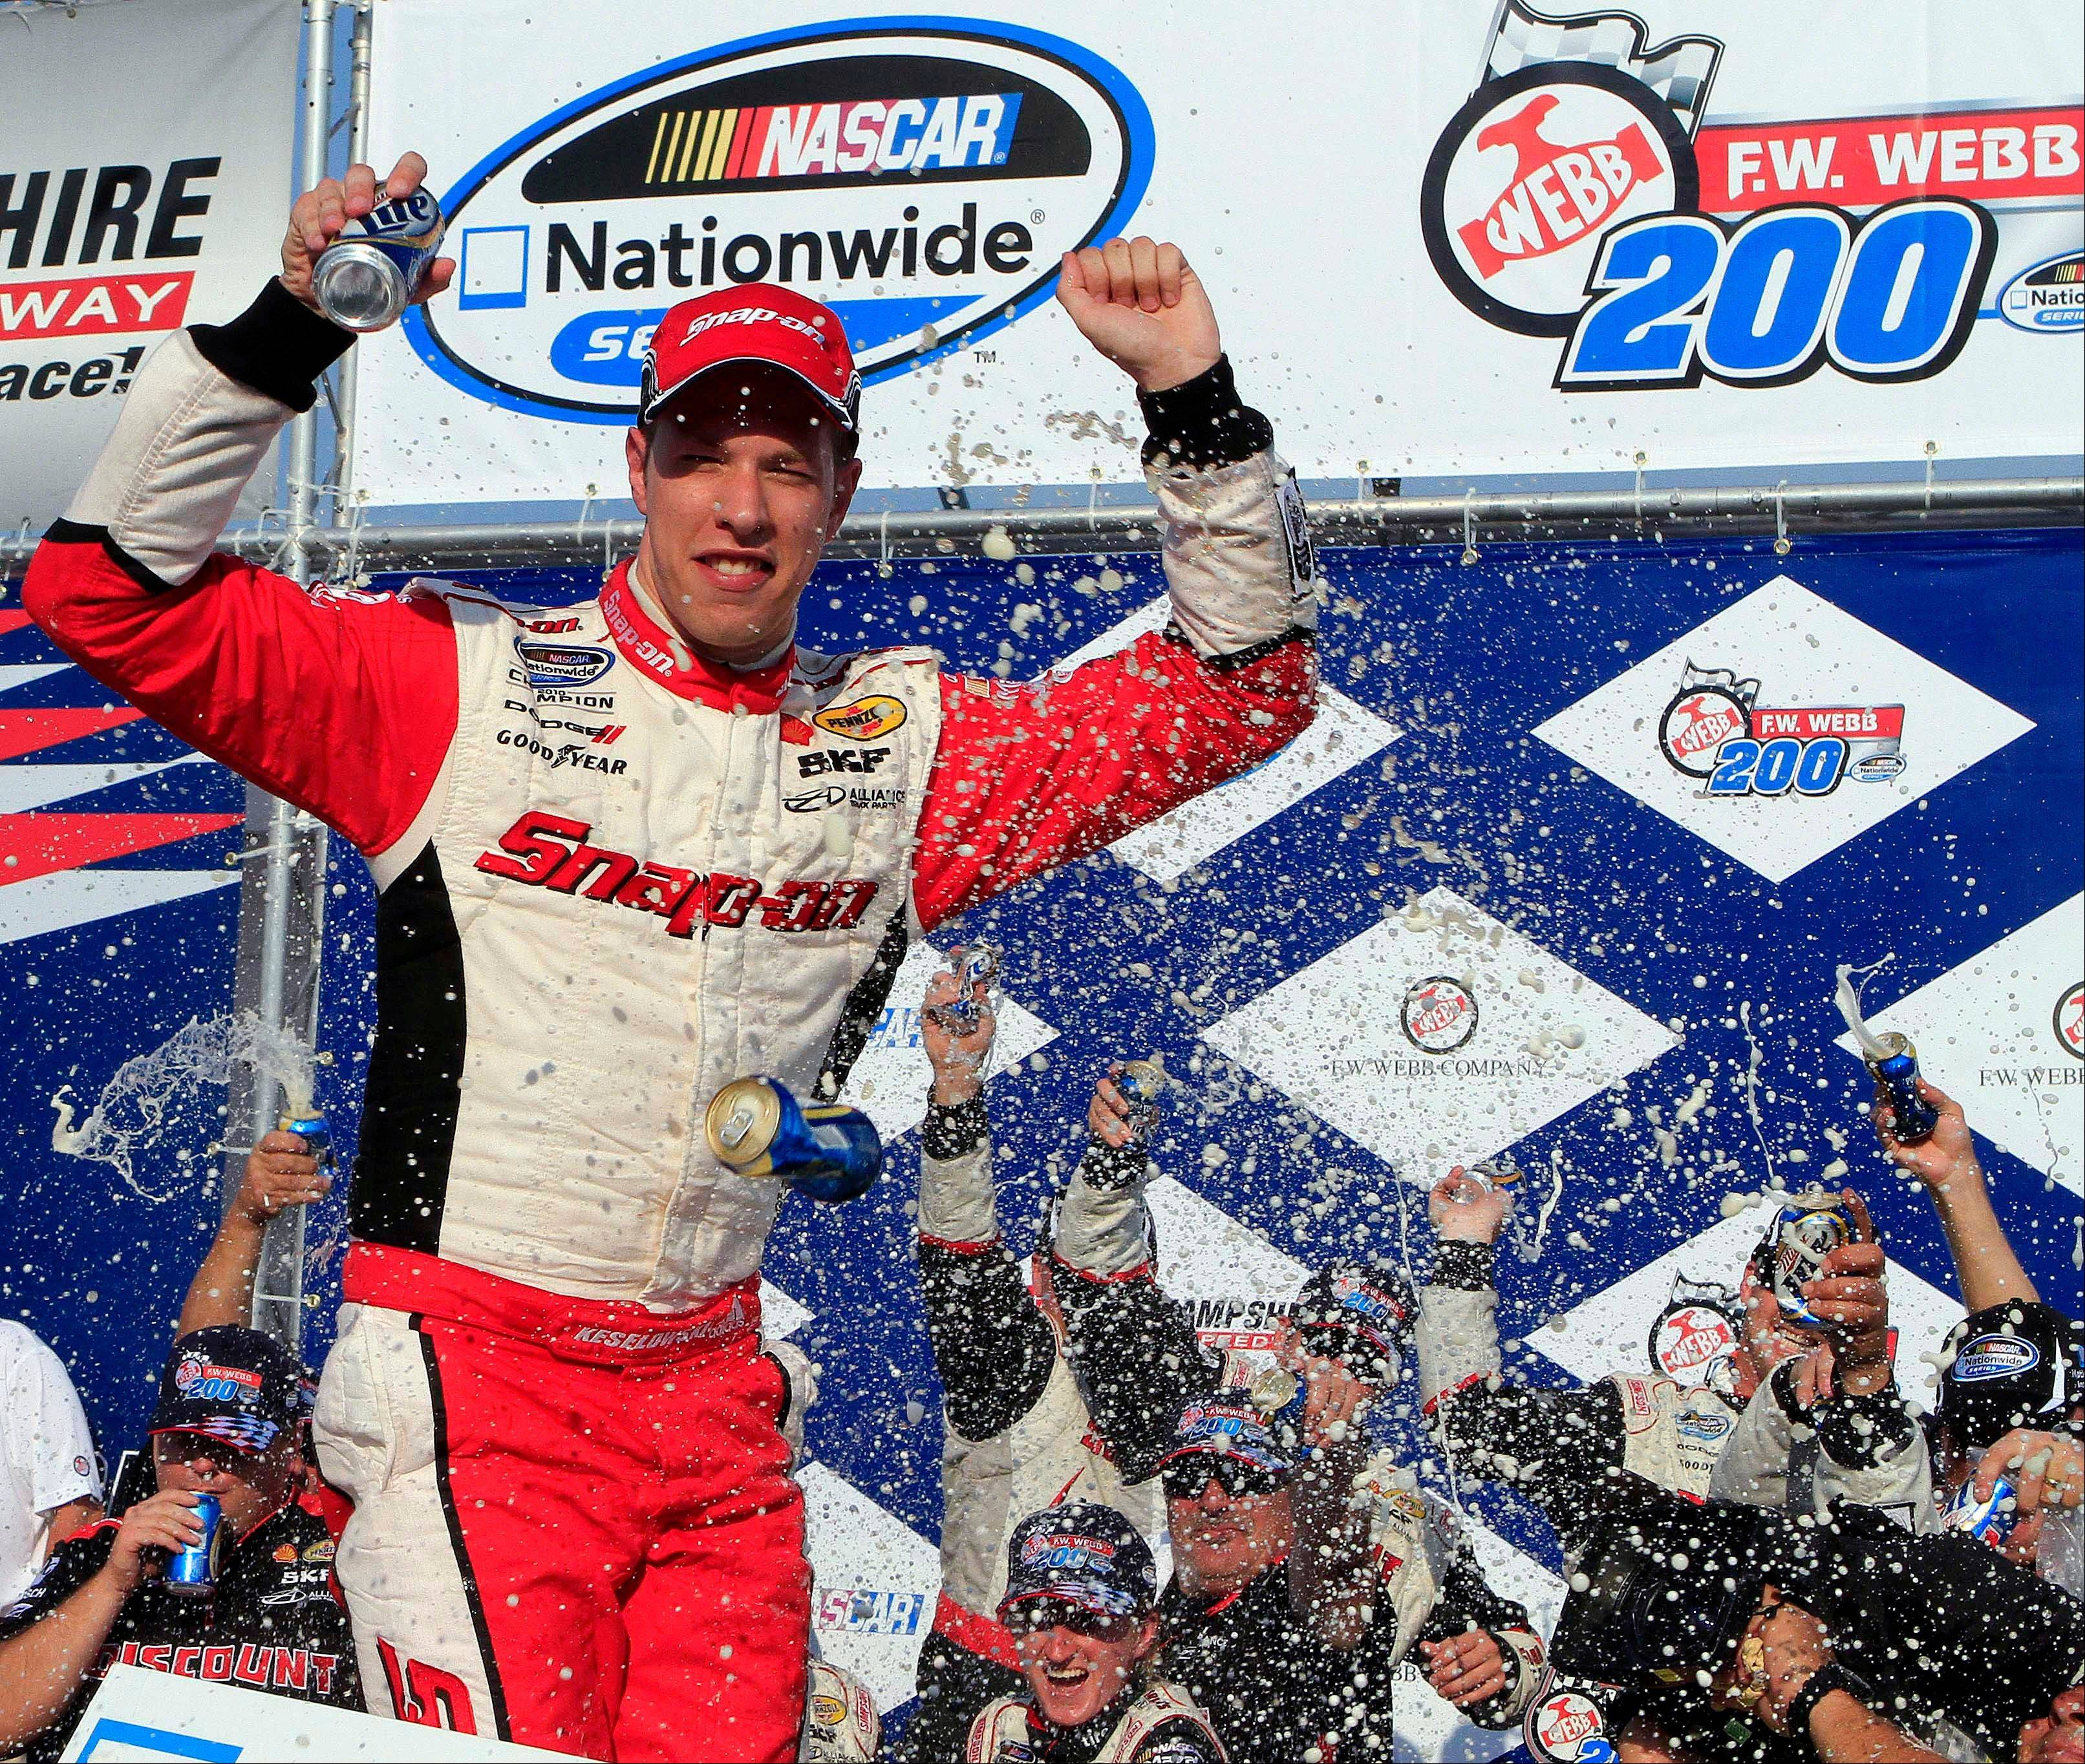 Brad Keselowski celebrates in victory lane after Saturday winning the NASCAR Nationwide Series auto race at New Hampshire Motor Speedway in Loudon, N.H.